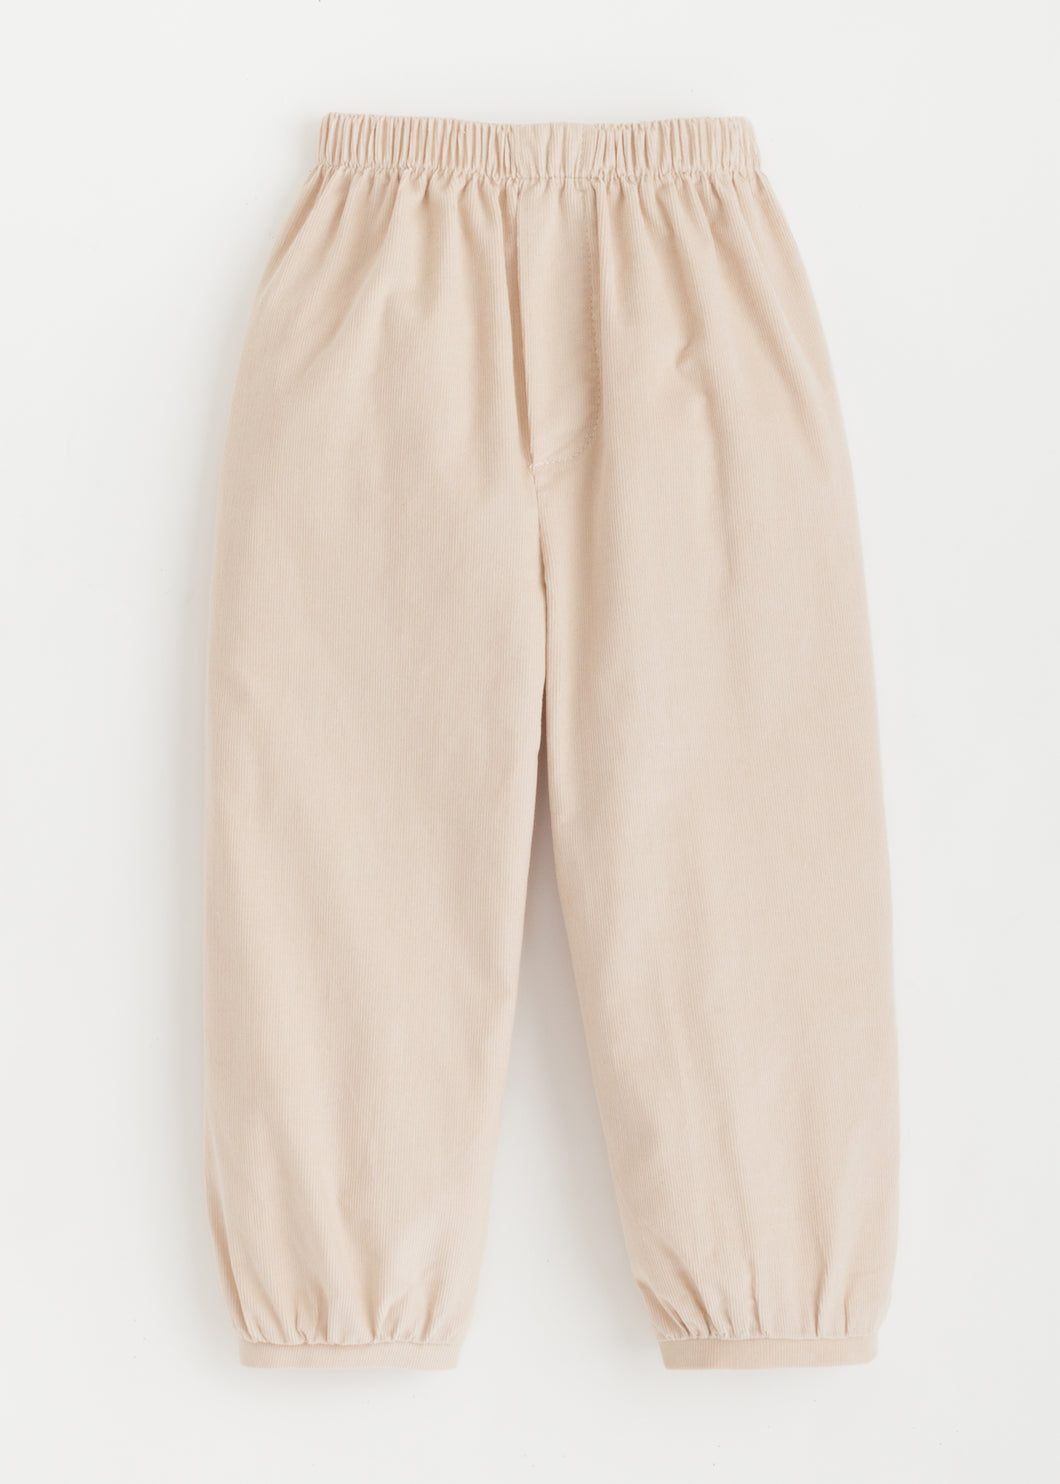 Banded Pull on Pant - Tan Corduroy